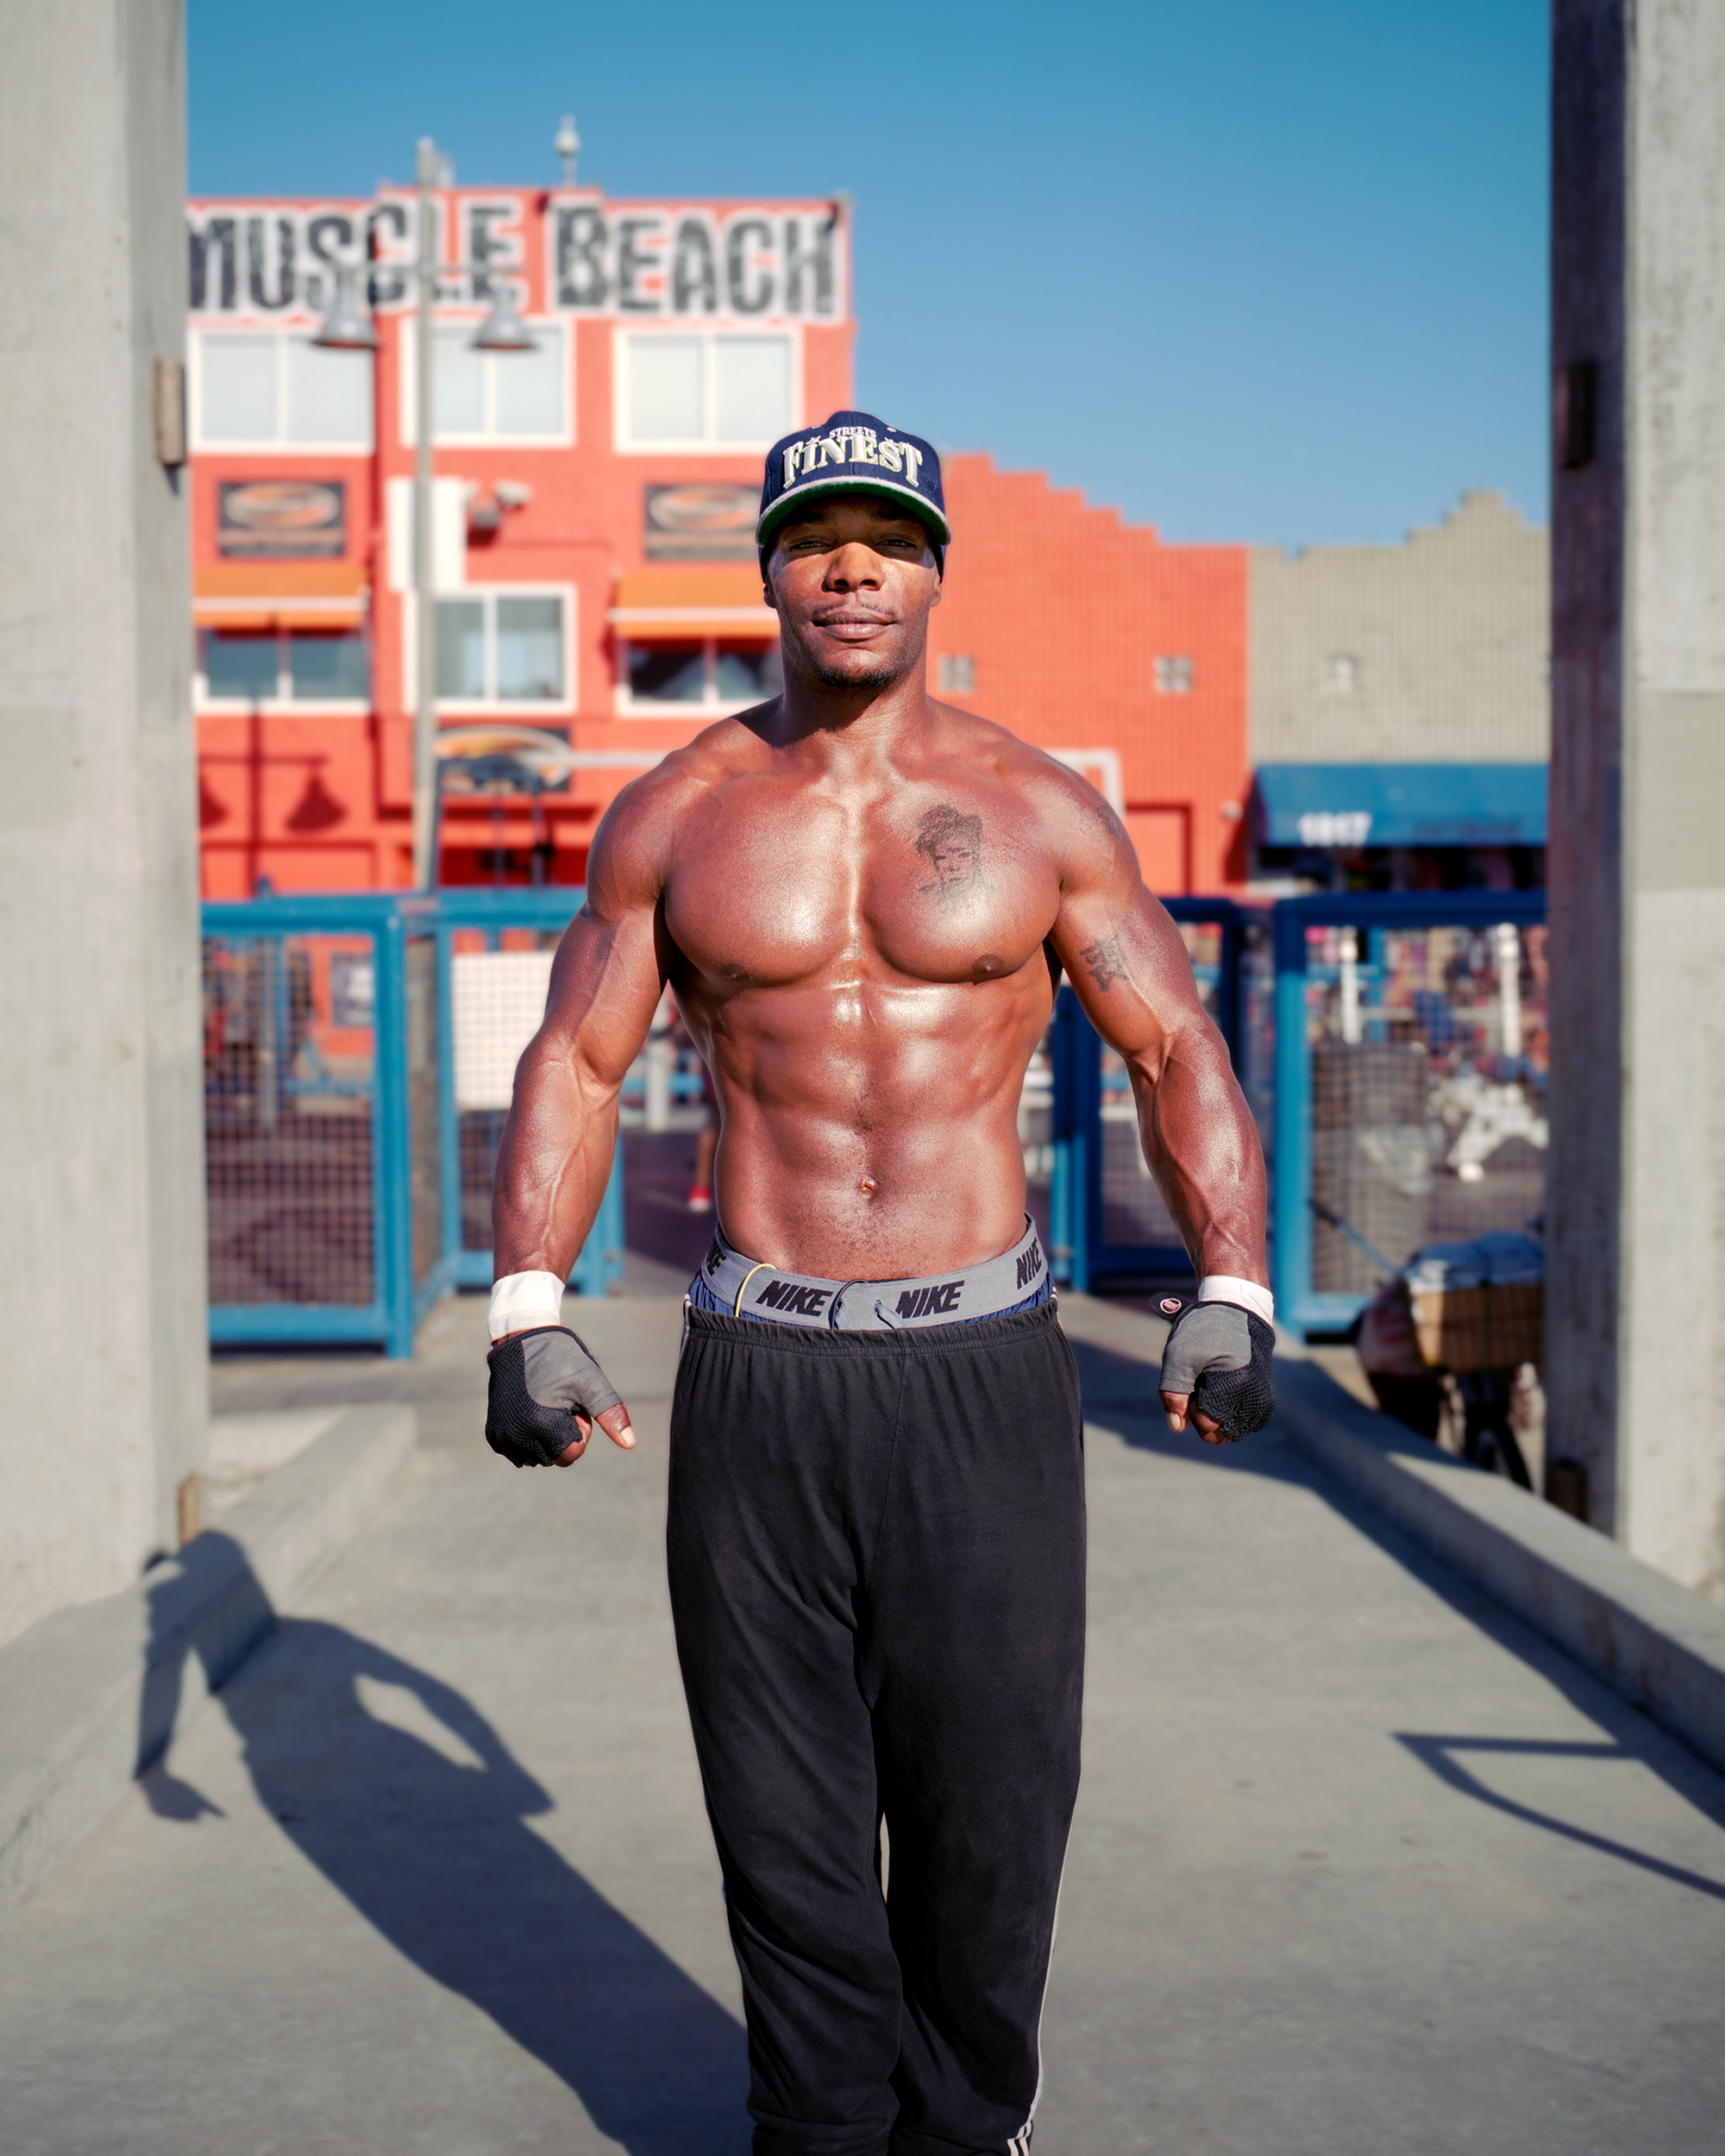 06___LA_02_muscleport_GOOD_crop_2500.jpg